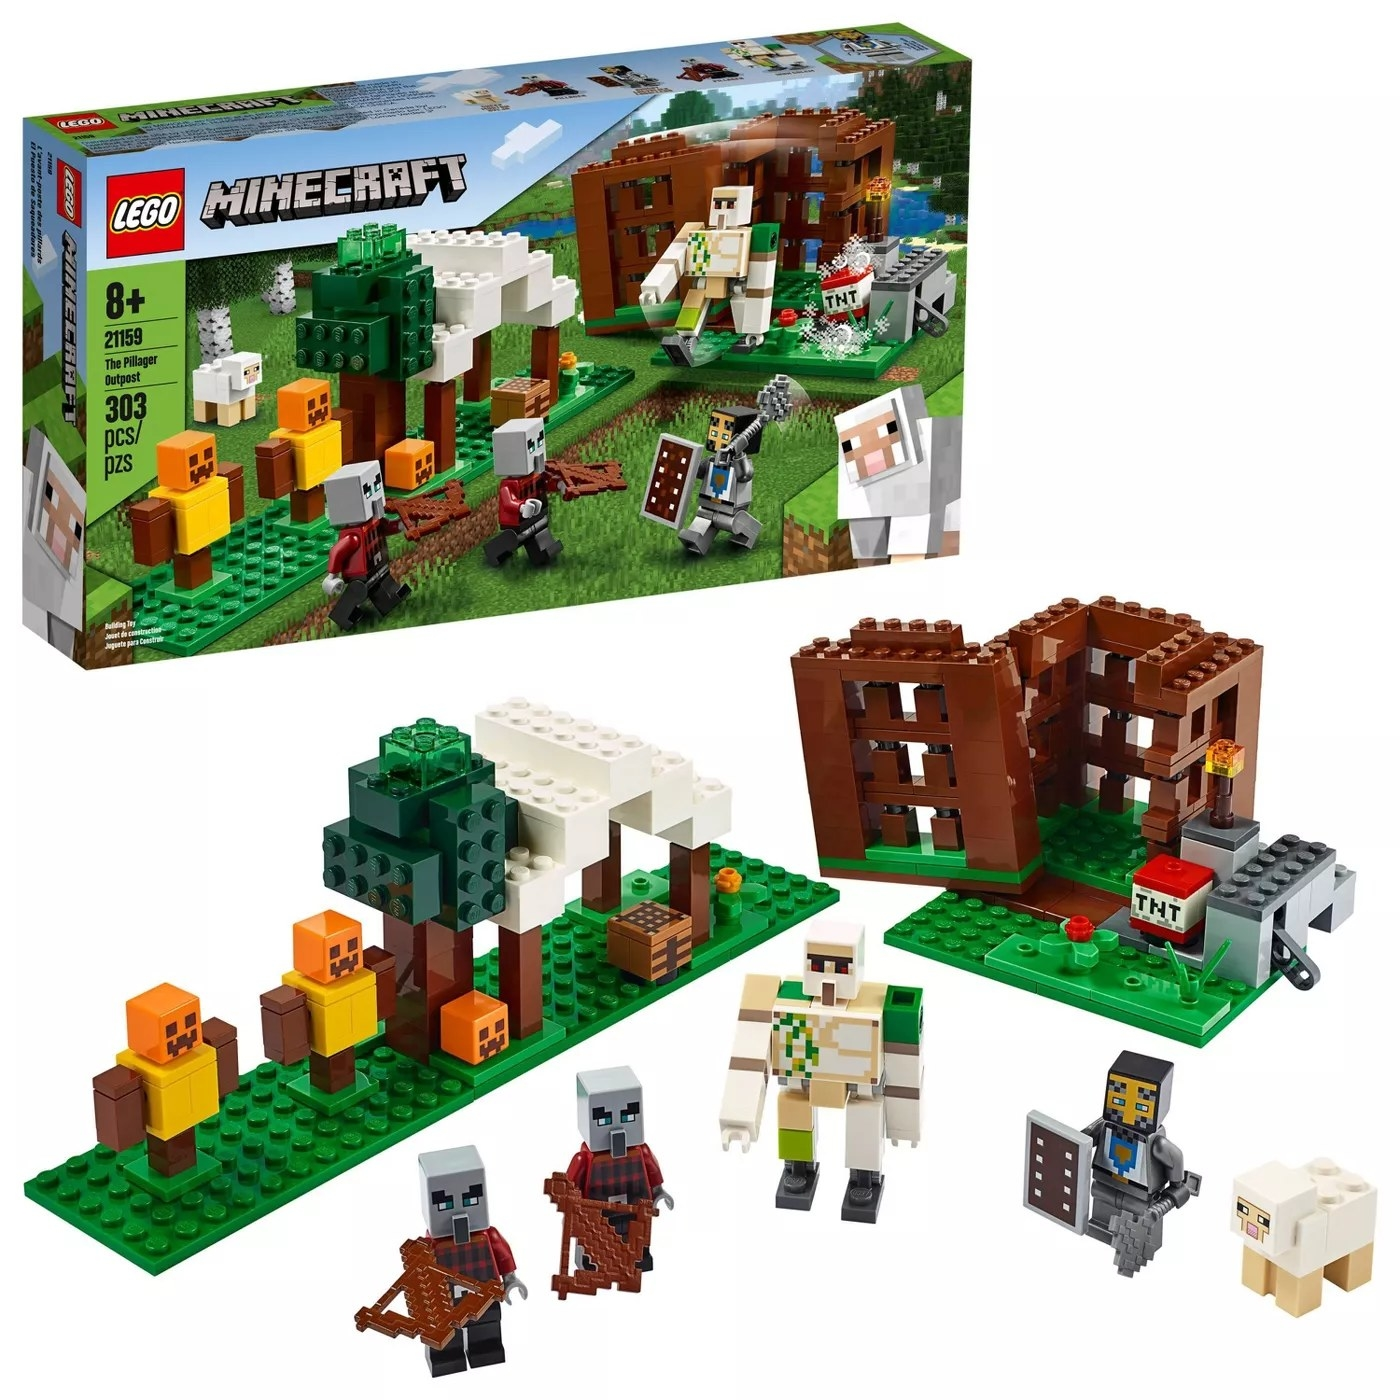 The 303-piece building set for ages 8 and up